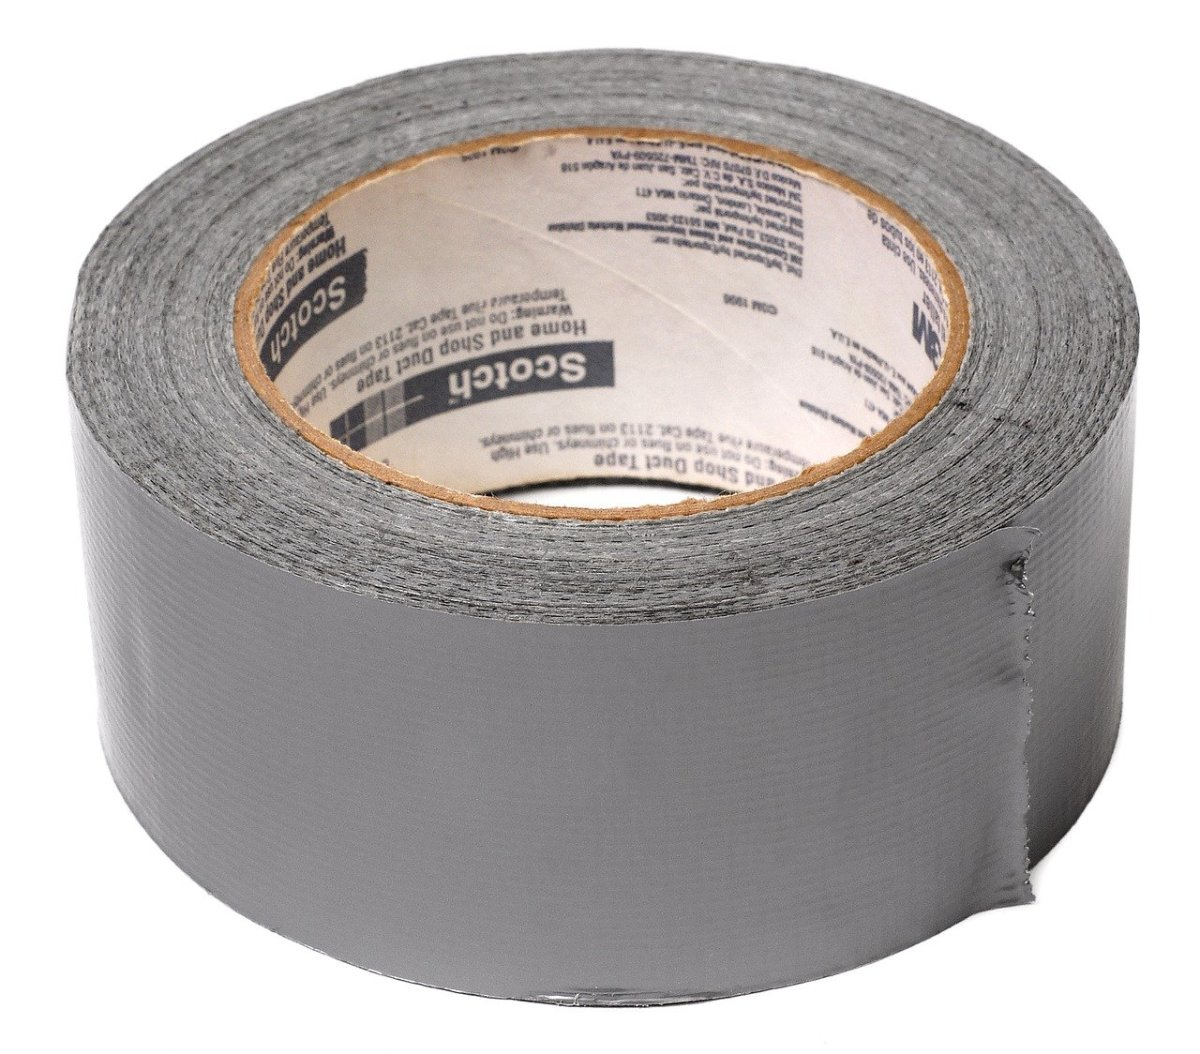 Duct tape.